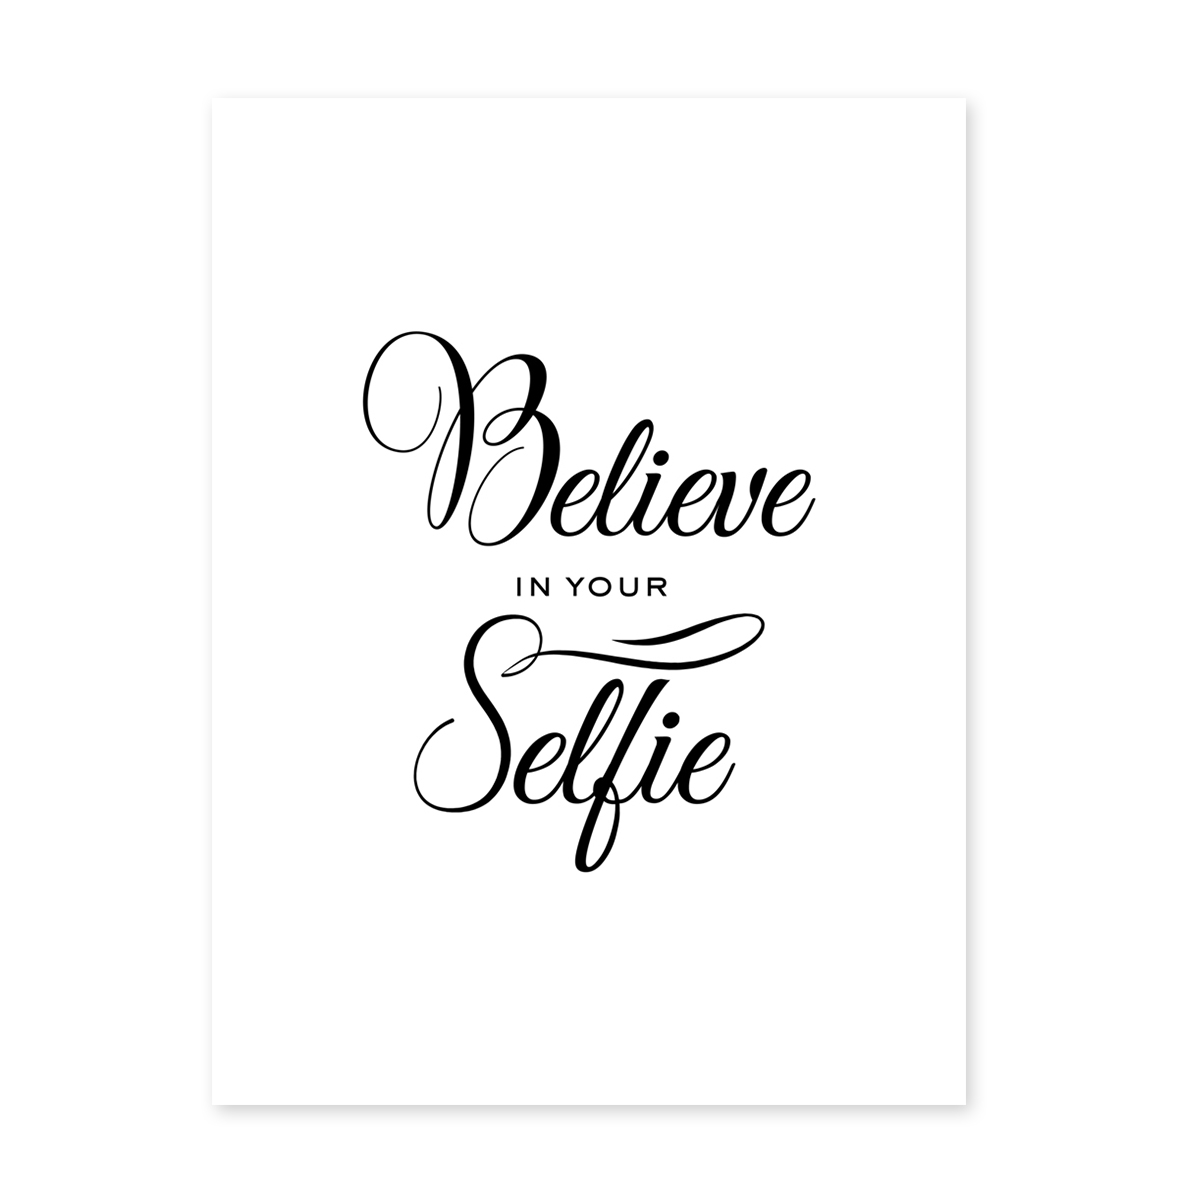 poster 39 selfie 39 30x40 cm schwarz weiss motiv fun spruch typographie poster spr che typographie. Black Bedroom Furniture Sets. Home Design Ideas